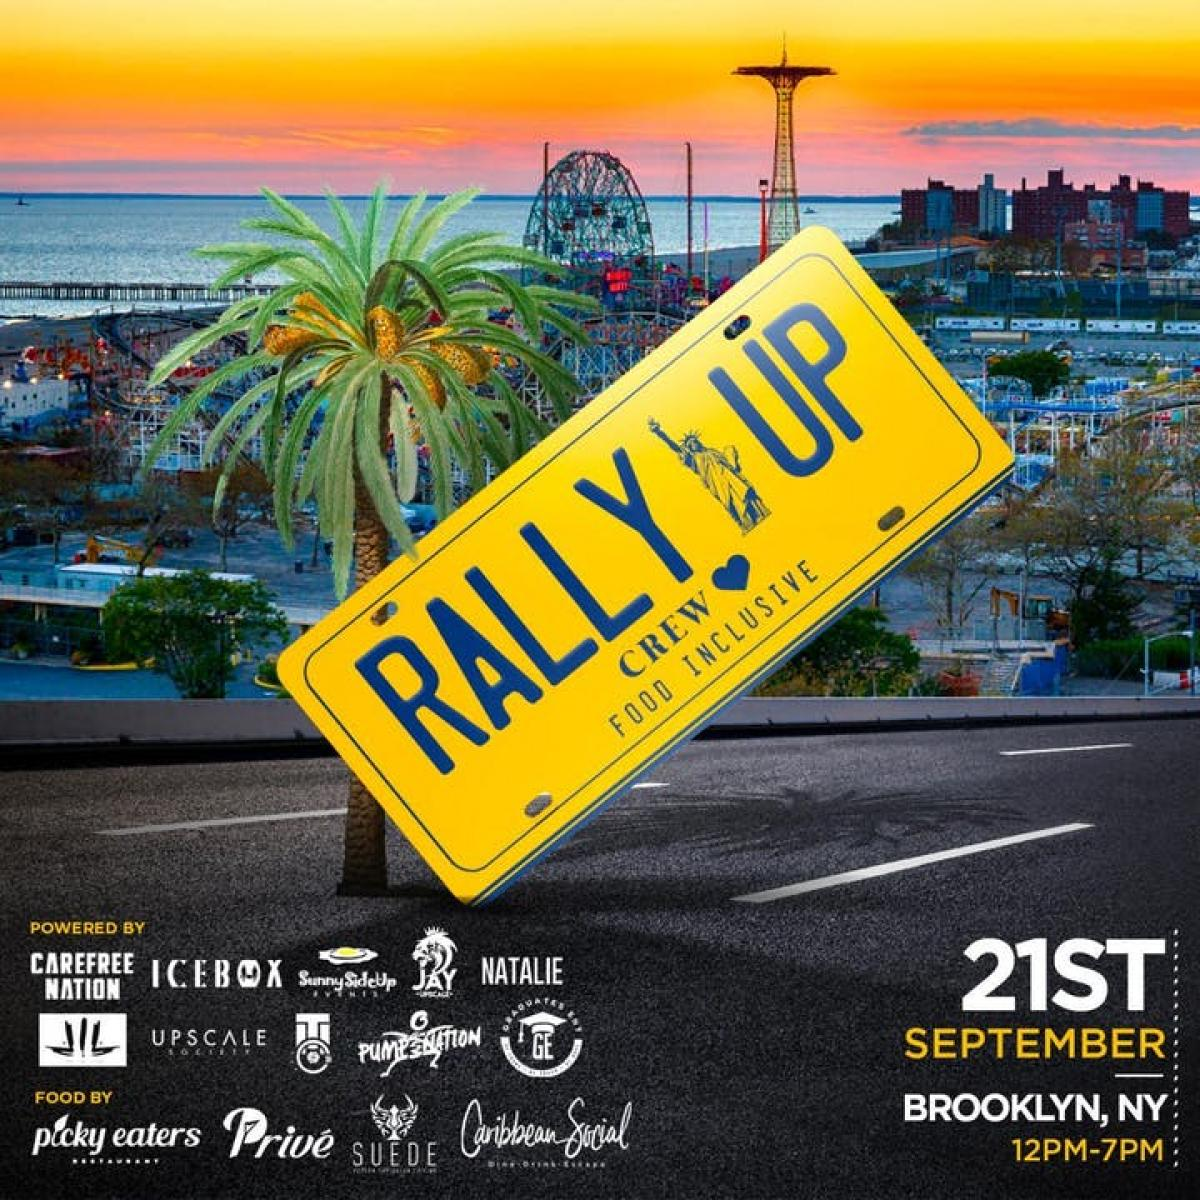 Rally Up flyer or graphic.